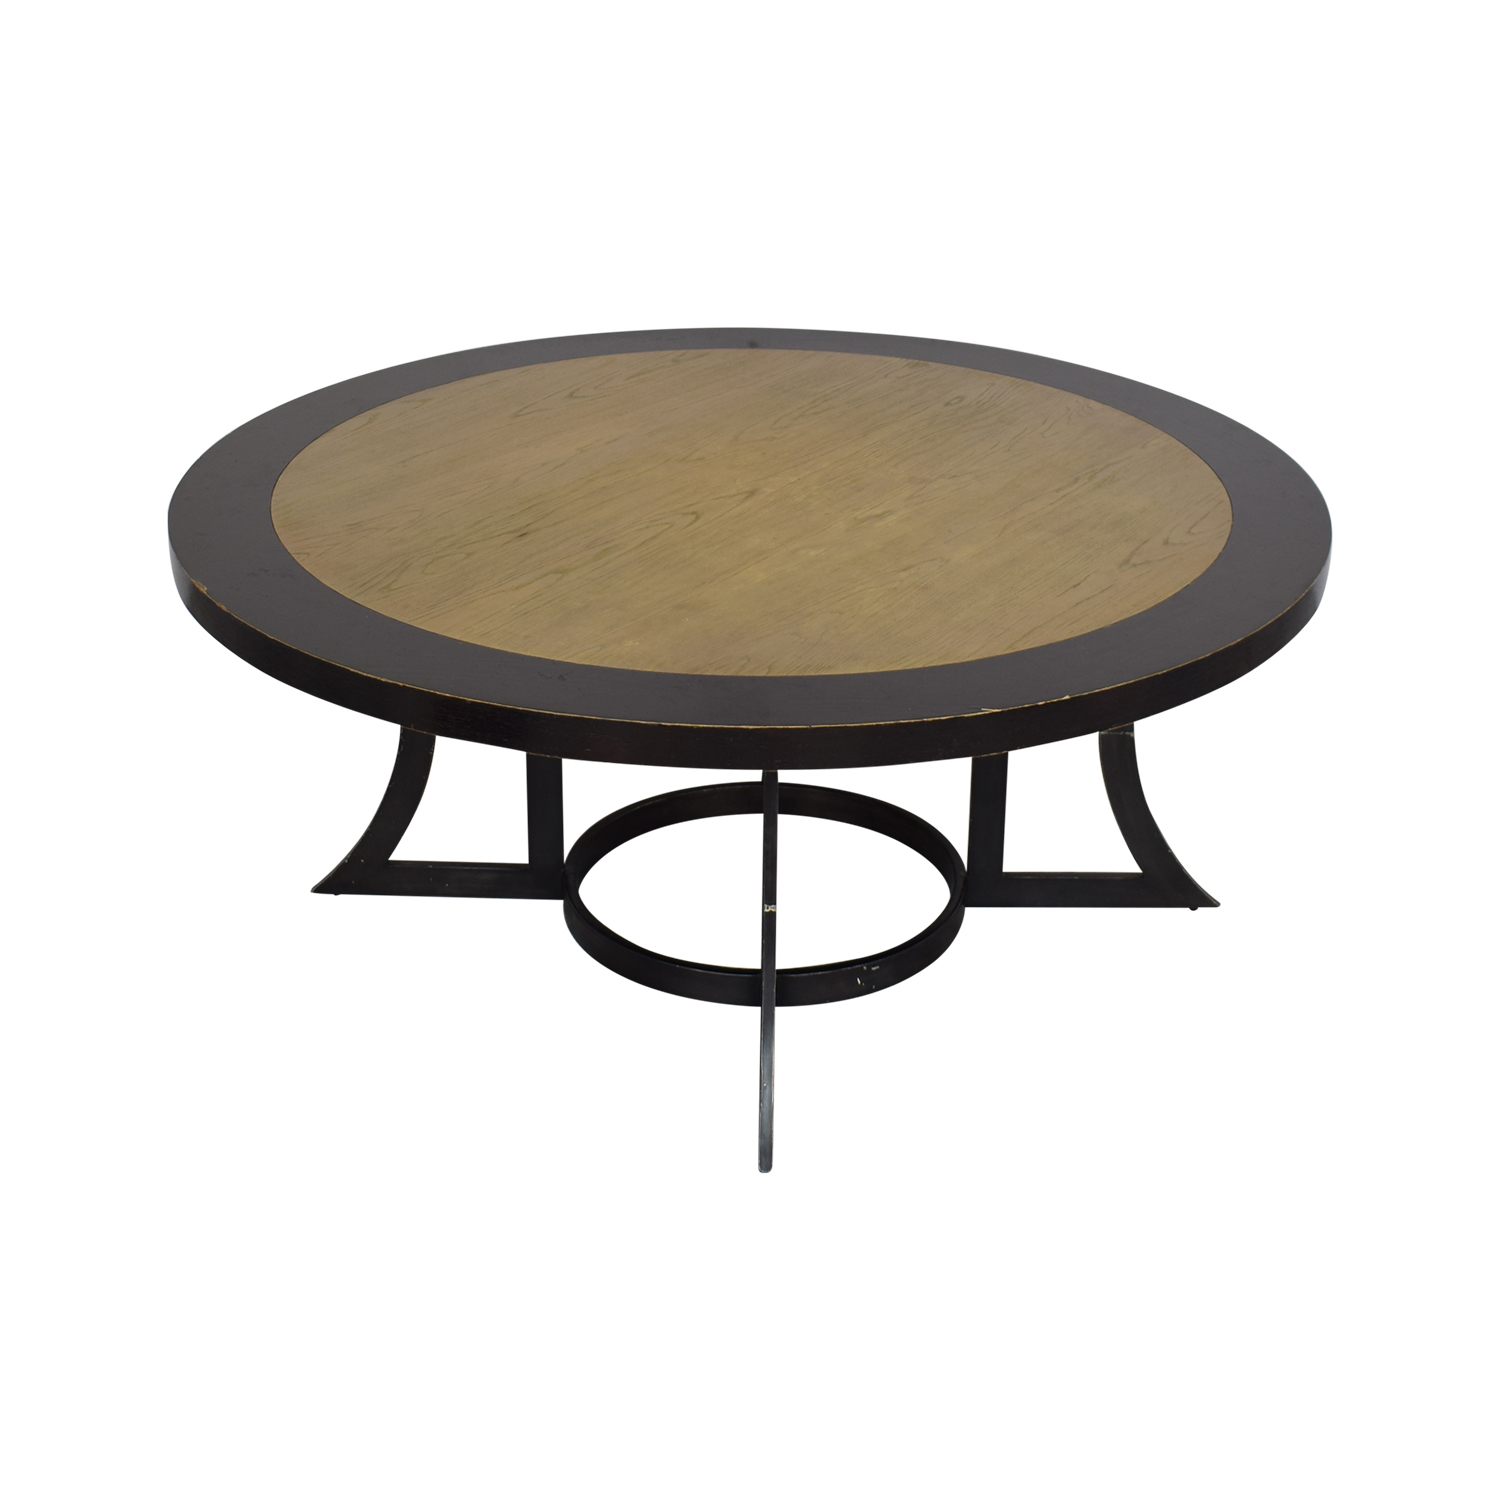 Thom Filicia Thom Filicia Dining Table price